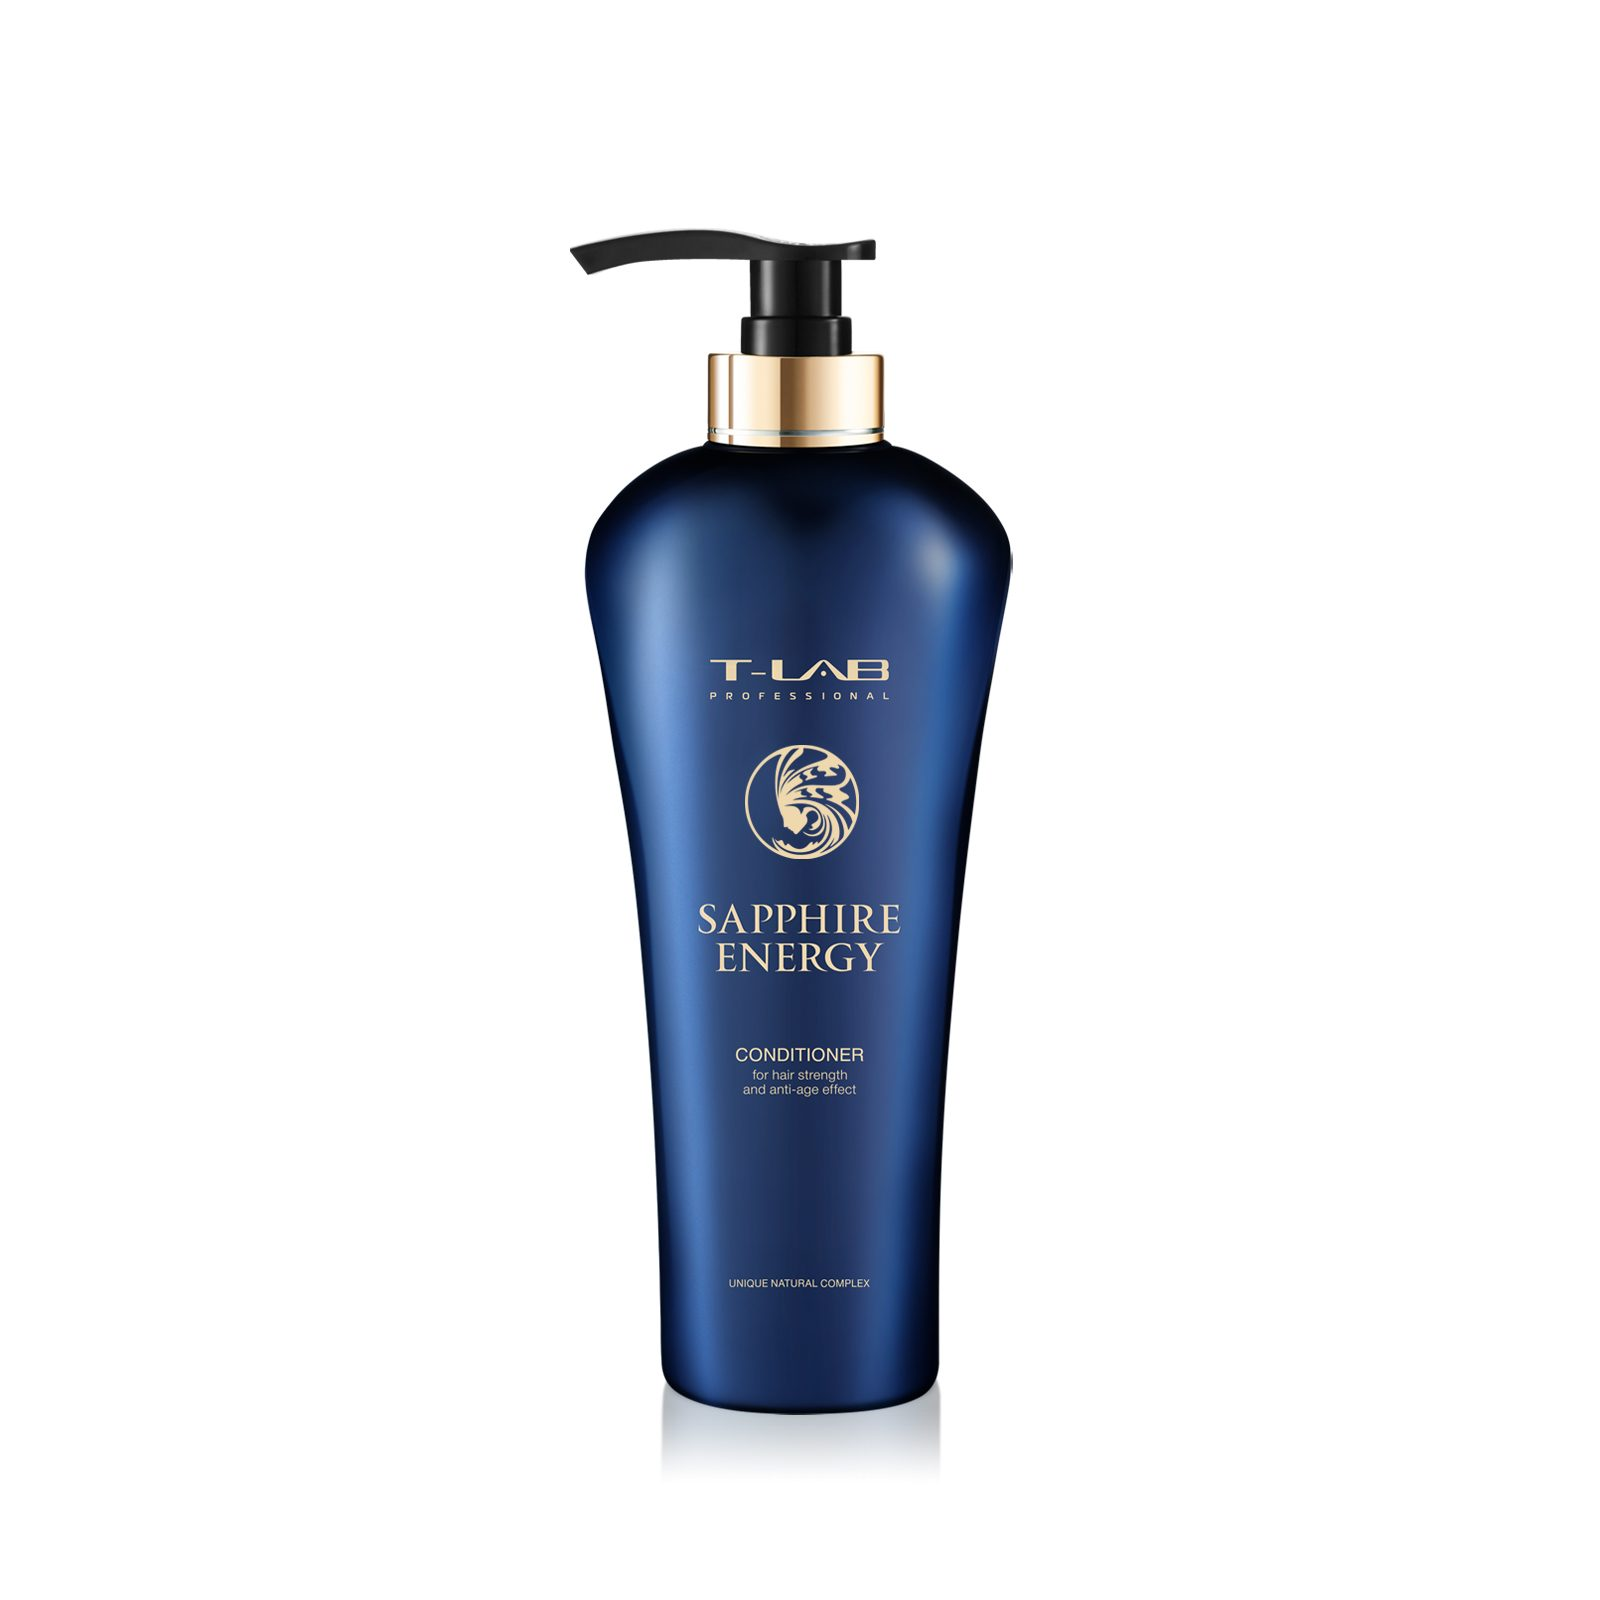 SAPPHIRE ENERGY CONDITIONER 750 ml